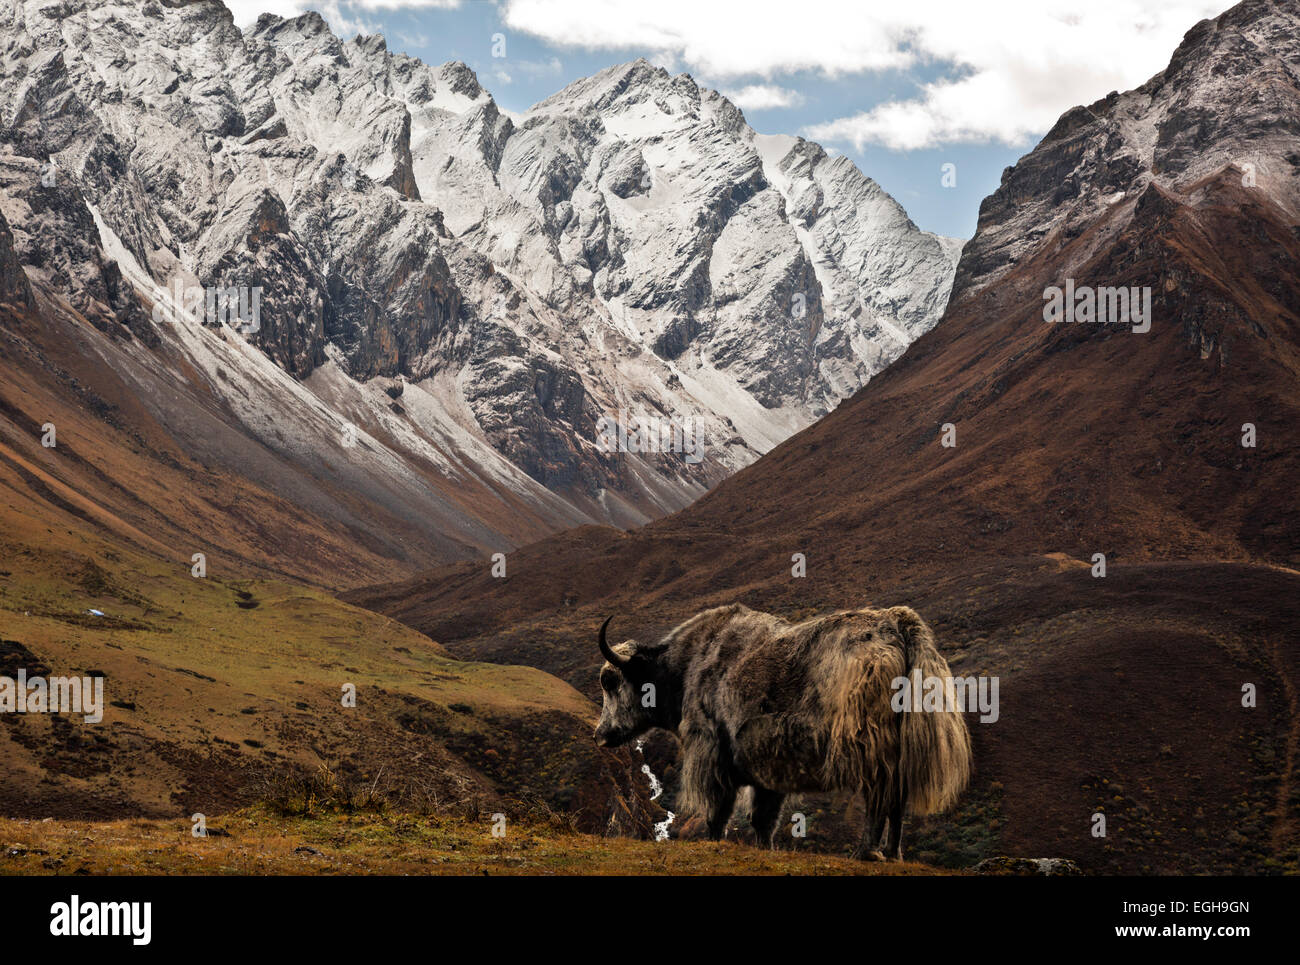 BHUTAN - Yak on hillside above the trekkers Base Camp (Jangothang) overlooking the trail to Bhonte La route of Jhomolhari - Stock Image